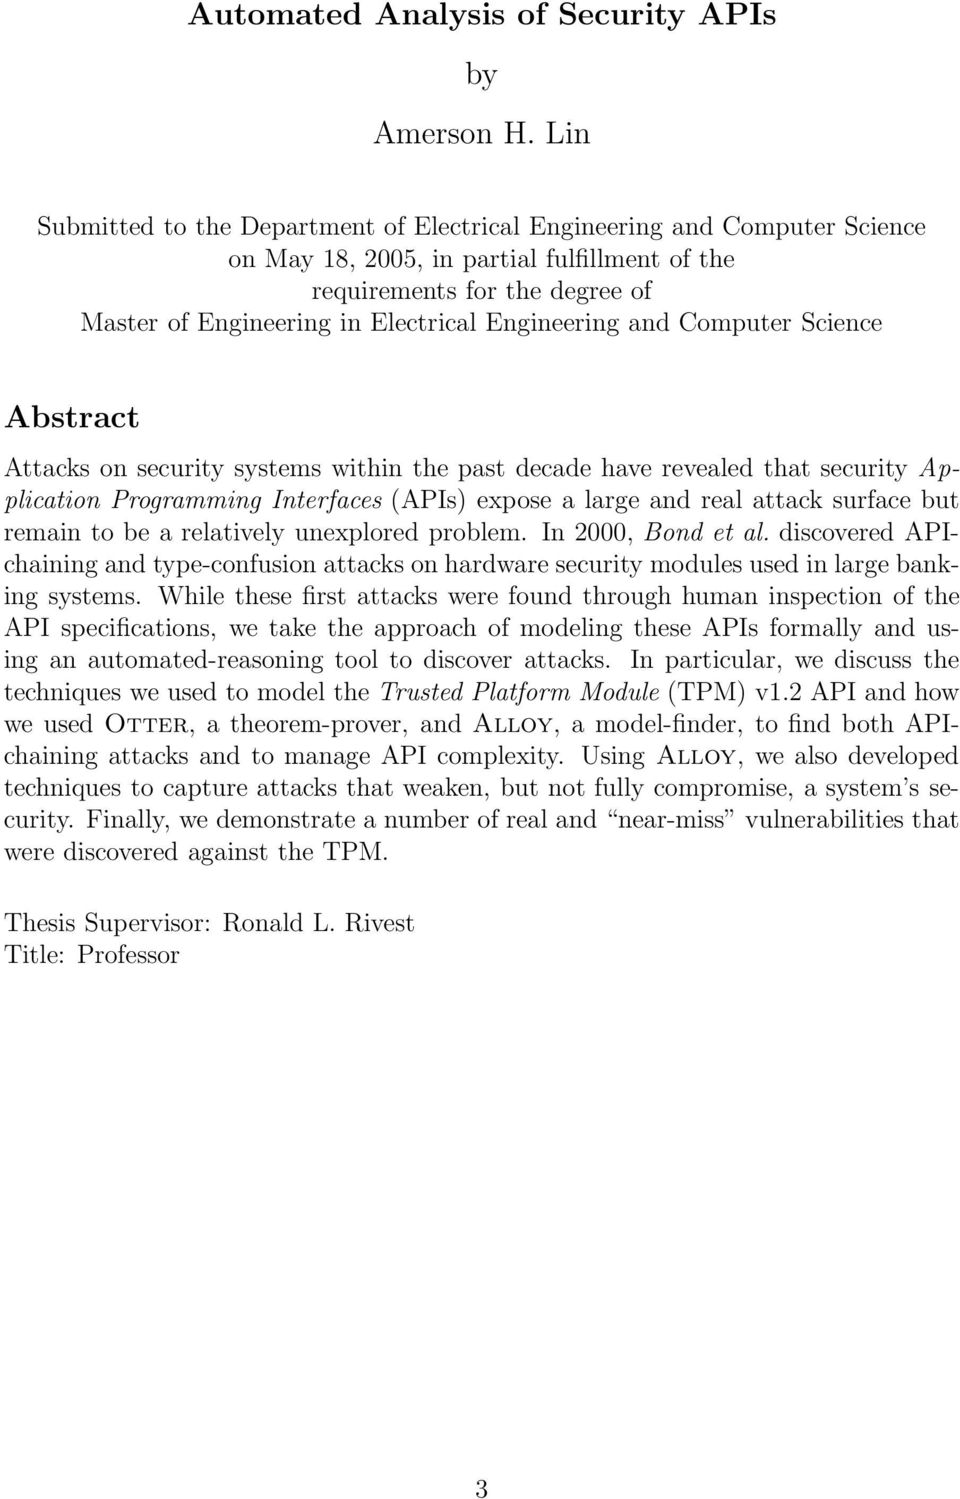 Engineering and Computer Science Abstract Attacks on security systems within the past decade have revealed that security Application Programming Interfaces (APIs) expose a large and real attack